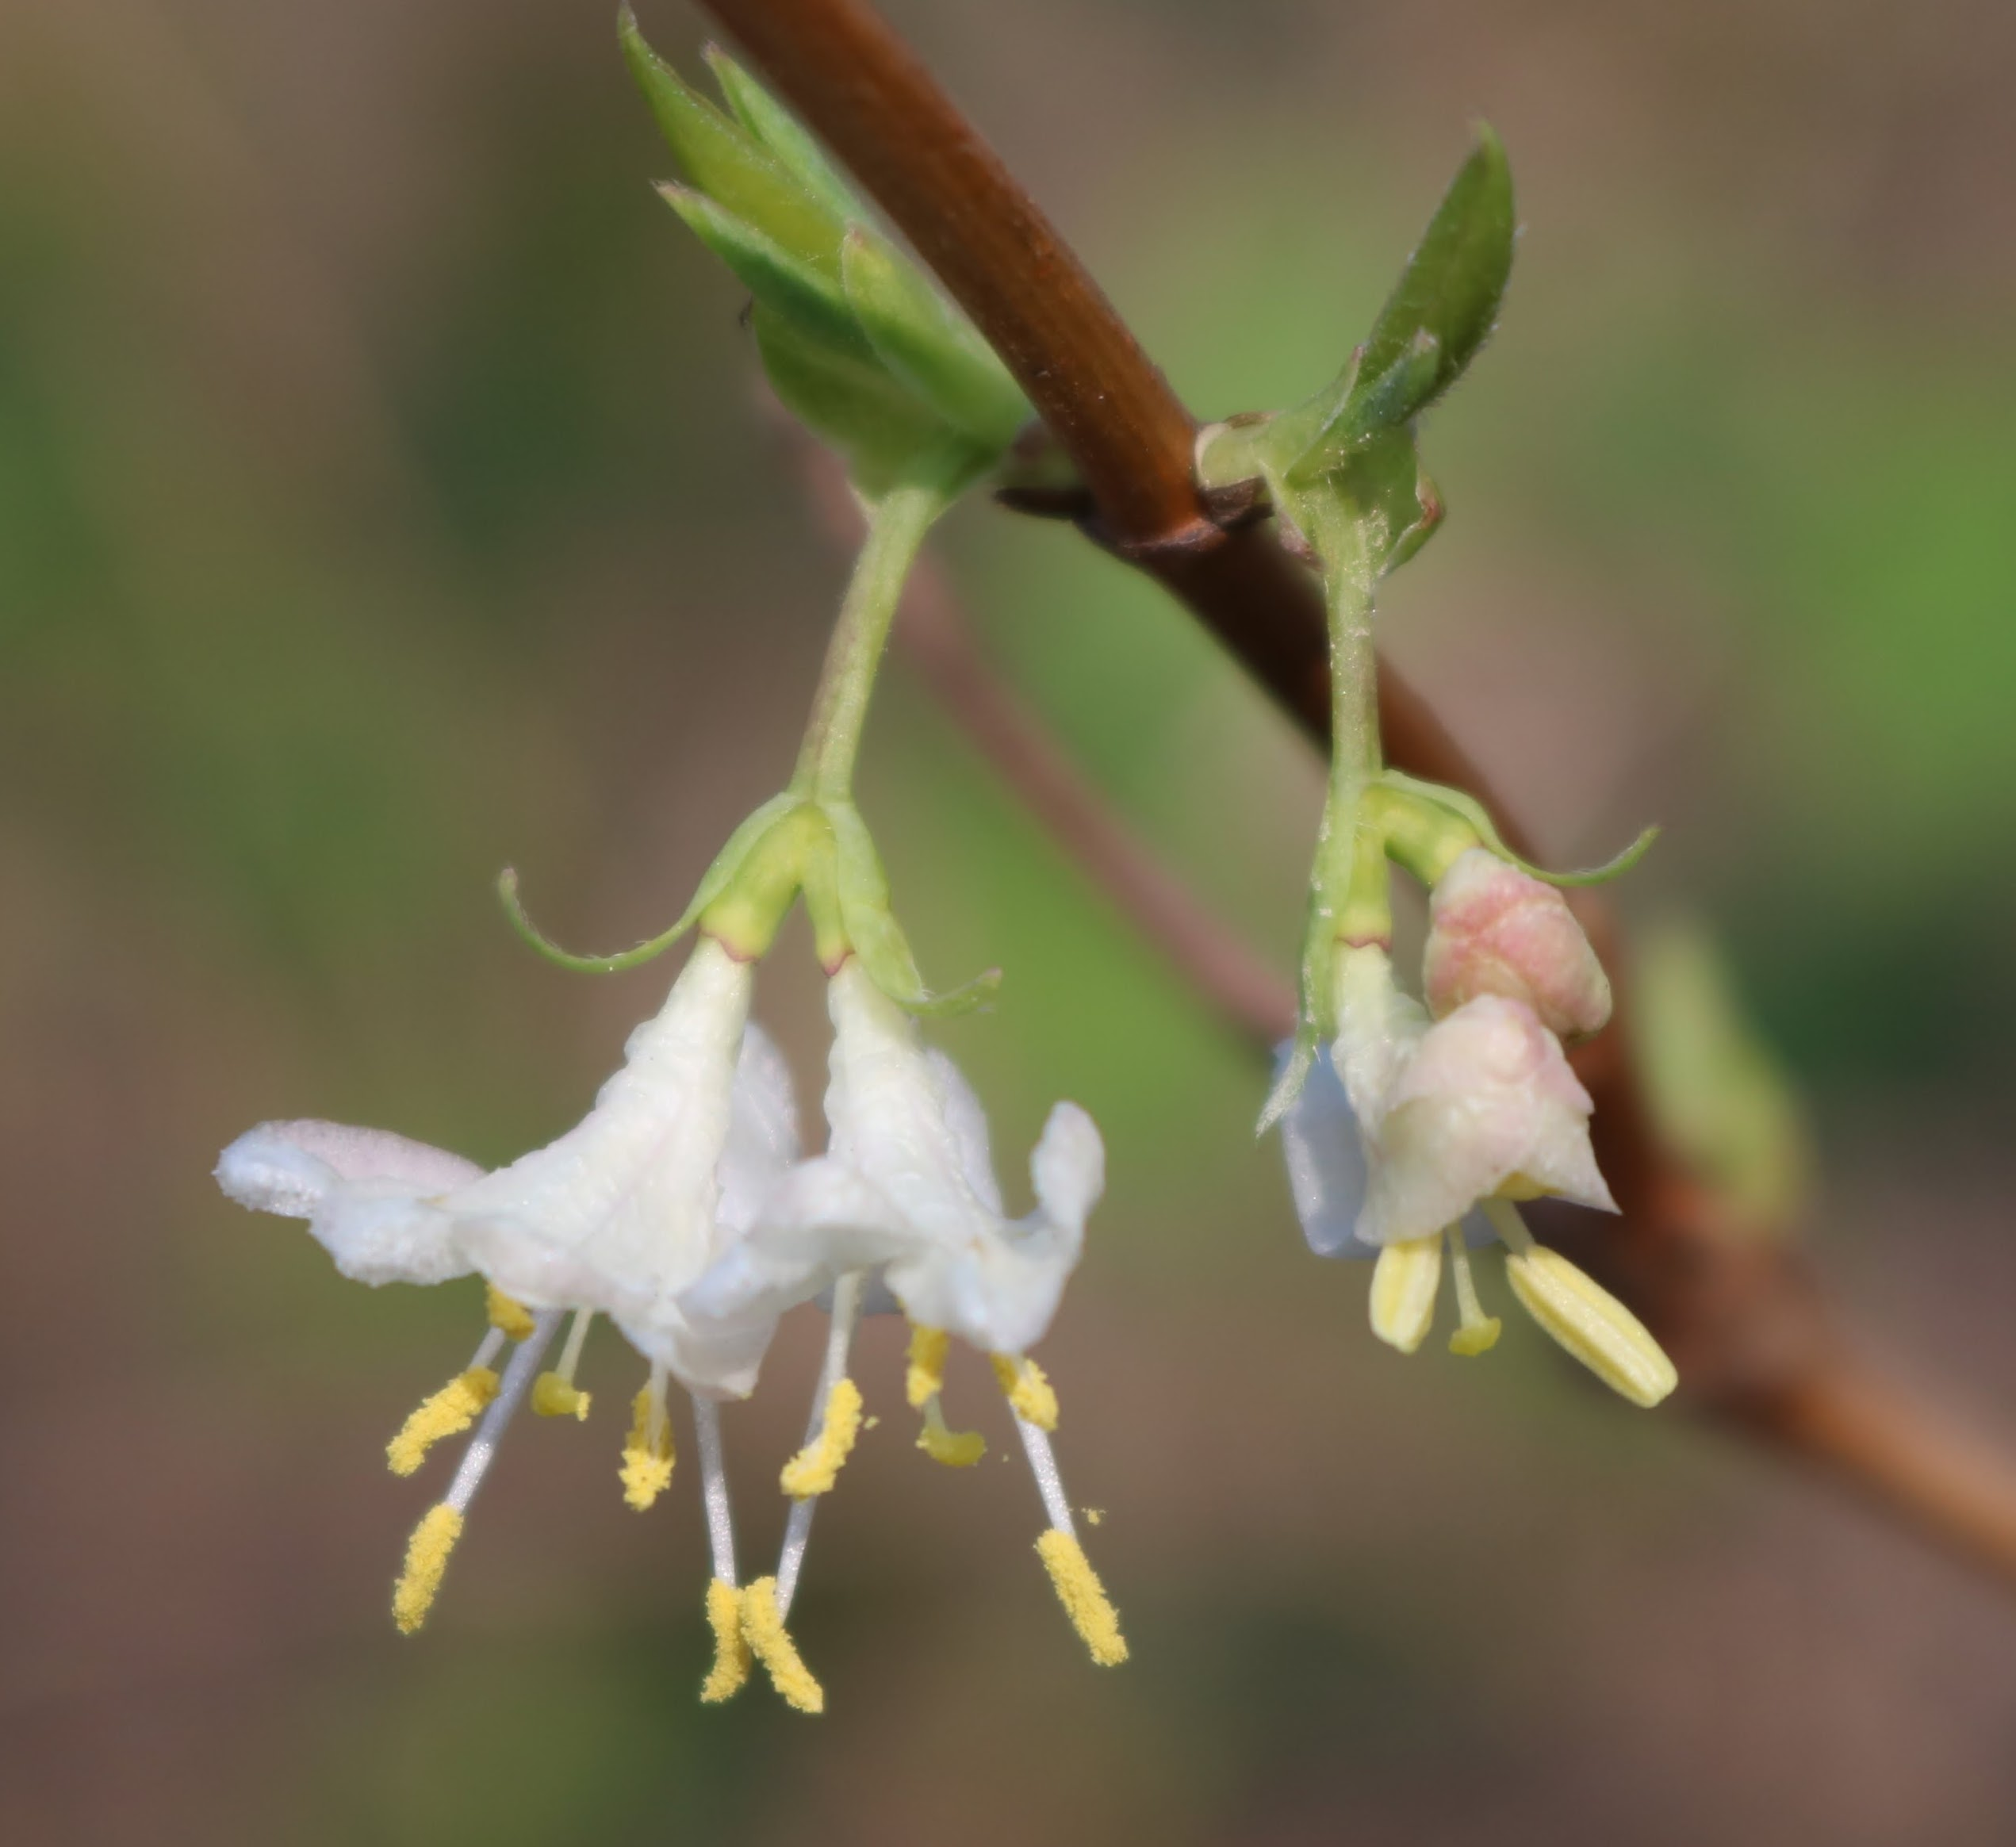 Close-up of white flowers of Winter Honeysuckle, Lonicera fragrantissima